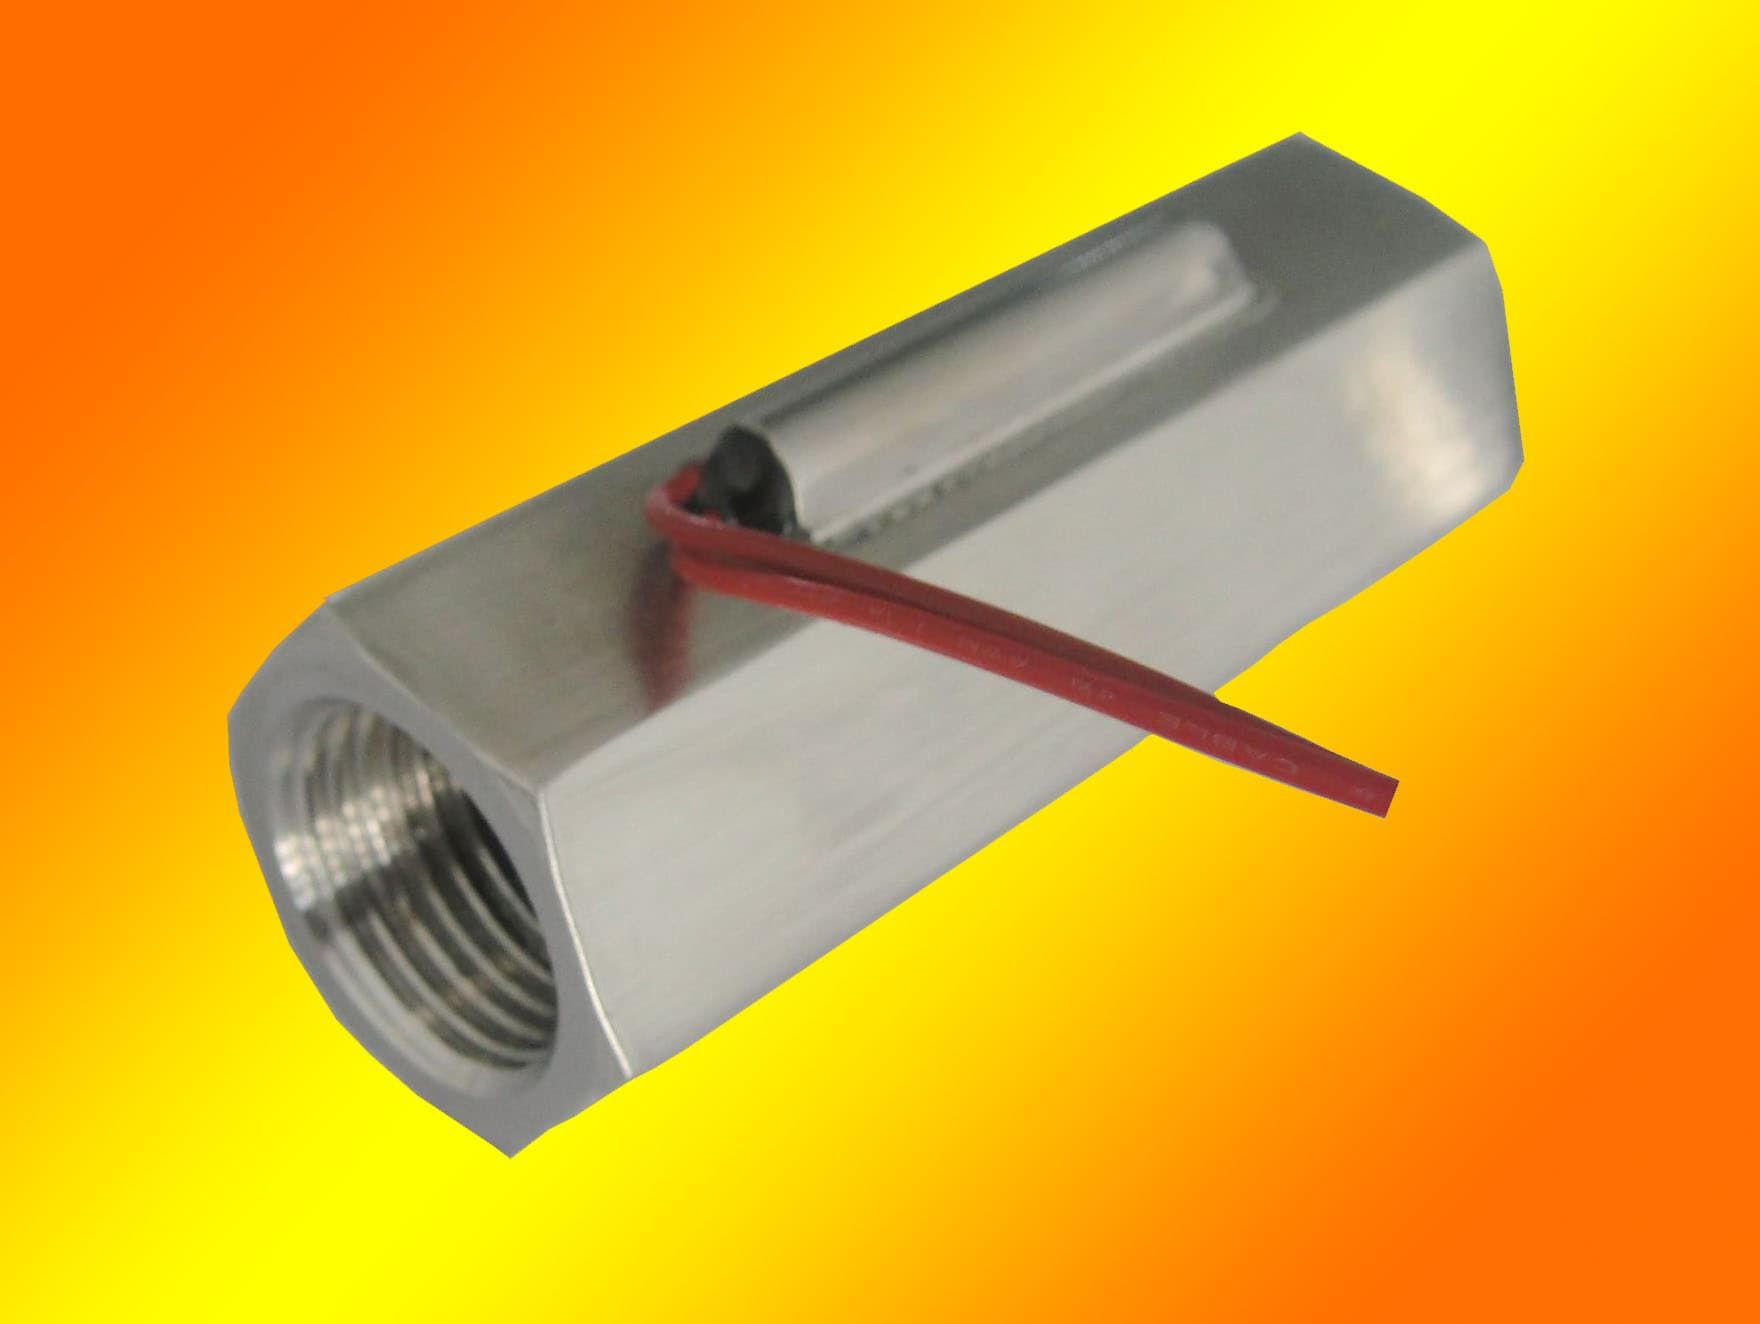 Ge small size stainless steel flow switch from a yite